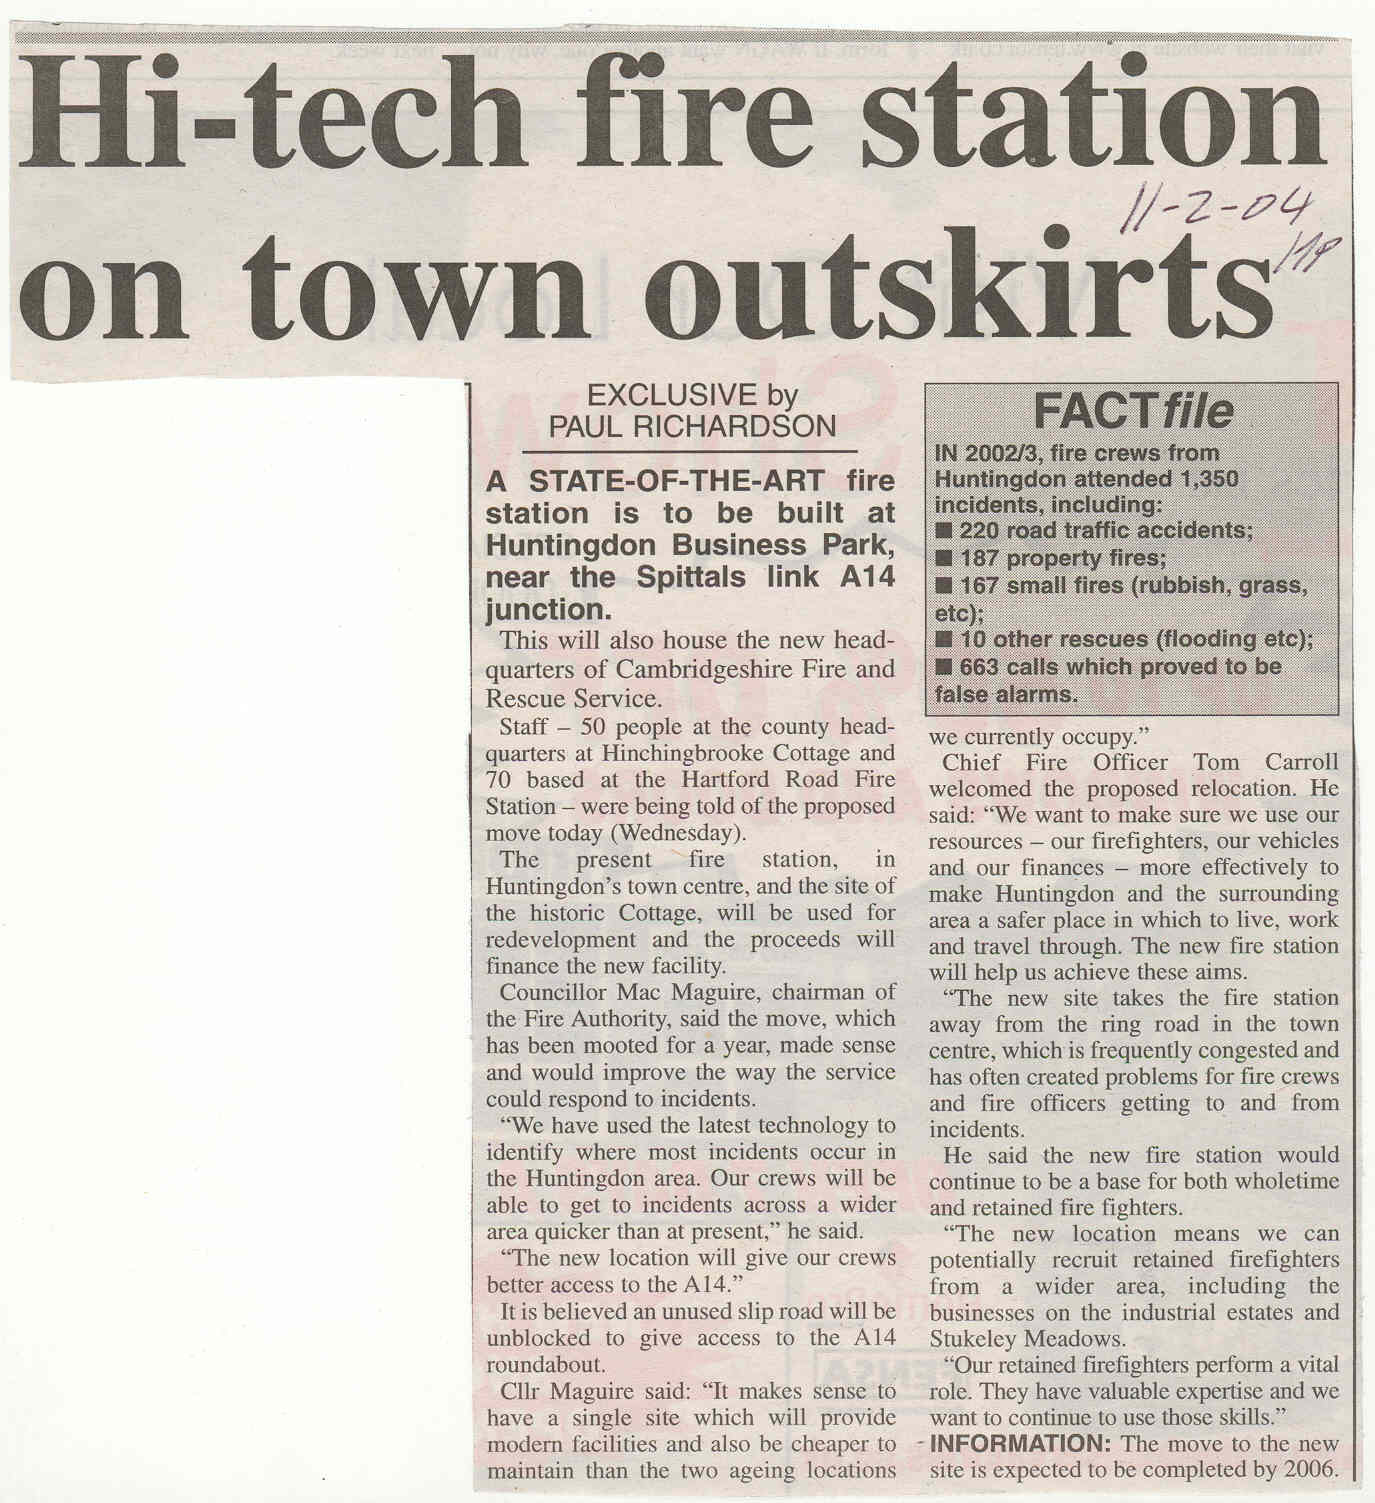 Plans for new fire station Source Hunts post  | Newsworthy